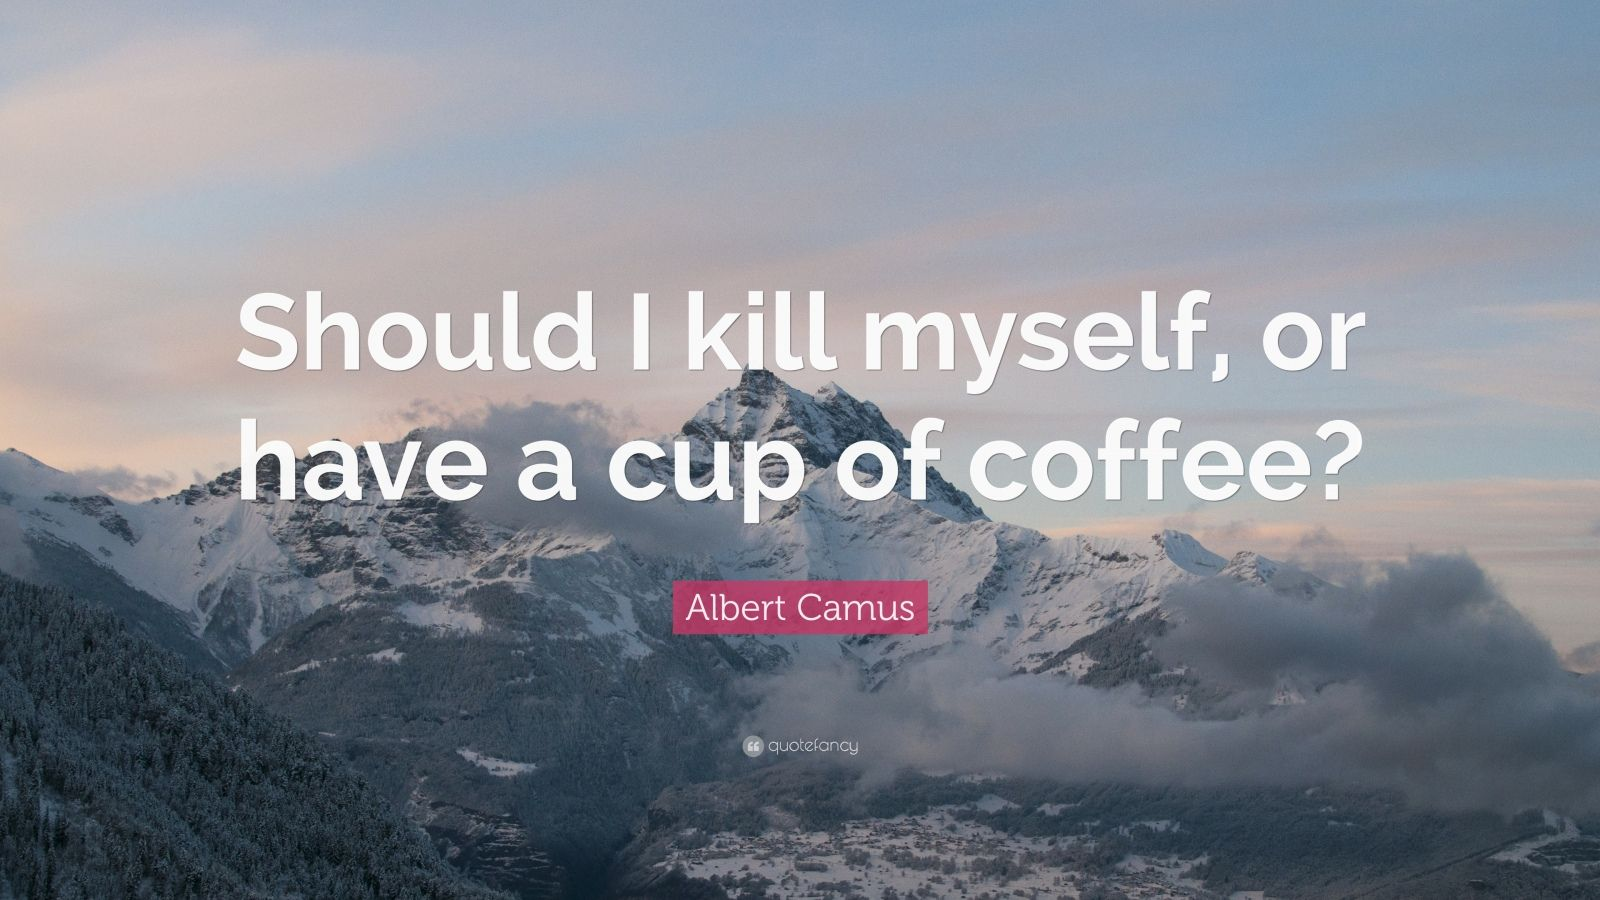 Albert Camus Quotes Wallpaper Albert Camus Quote Should I Kill Myself Or Have A Cup